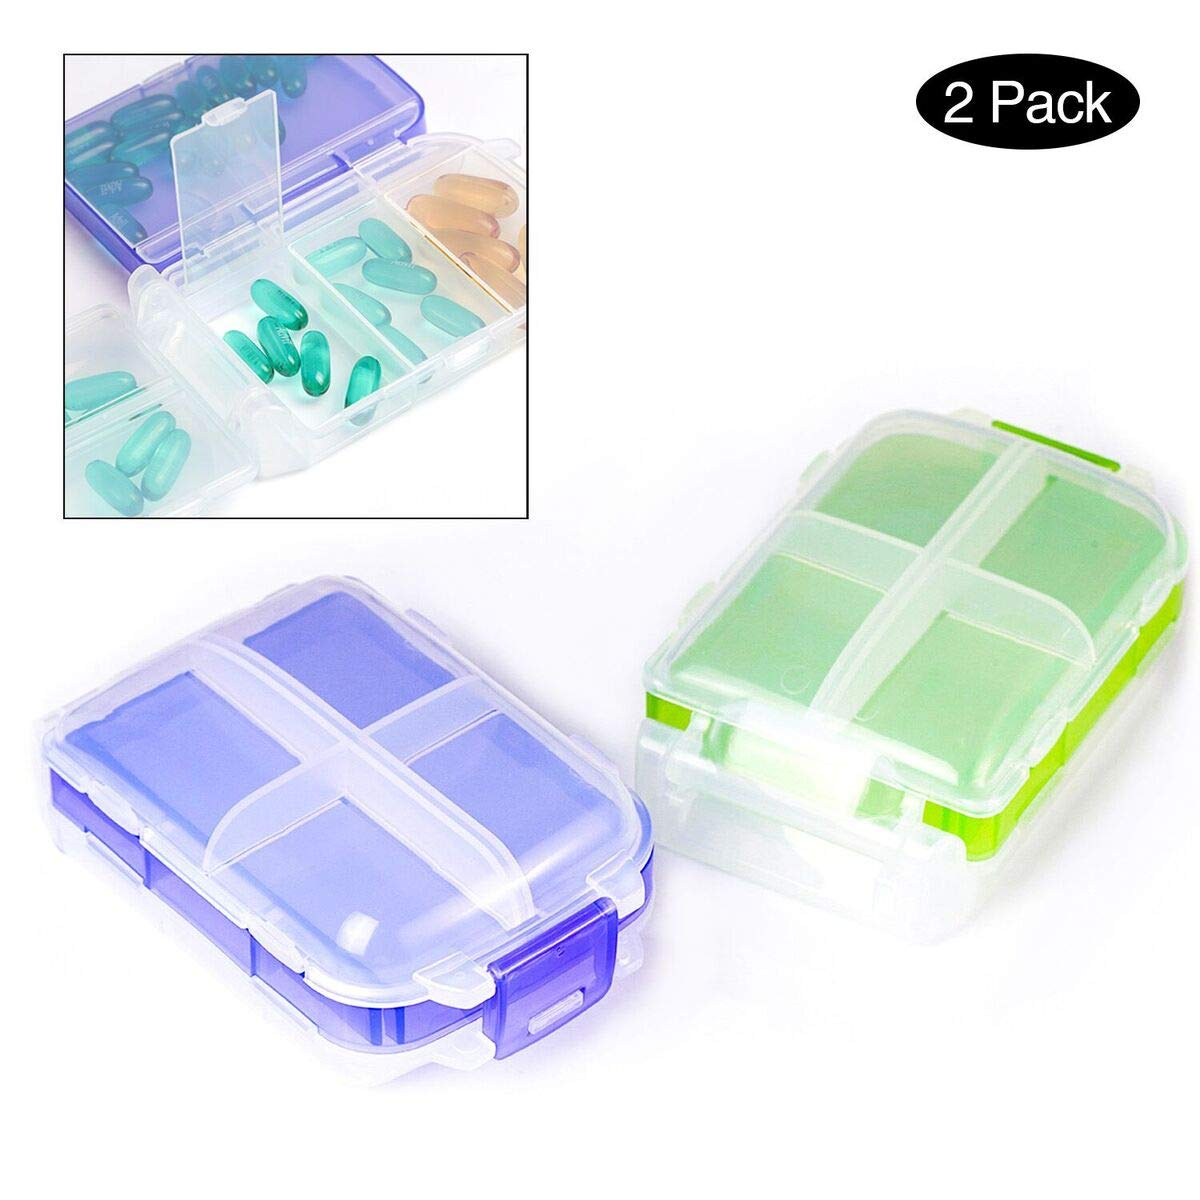 PuTwo Pill Box Large Capacity Travel Pill Case Set Pack of 2 Pill Boxes Pill Organizer Medicine Organizer Pill Holder Medication Organizer Daily Pill Organizer Travel Pill Organizer - Purple & Green